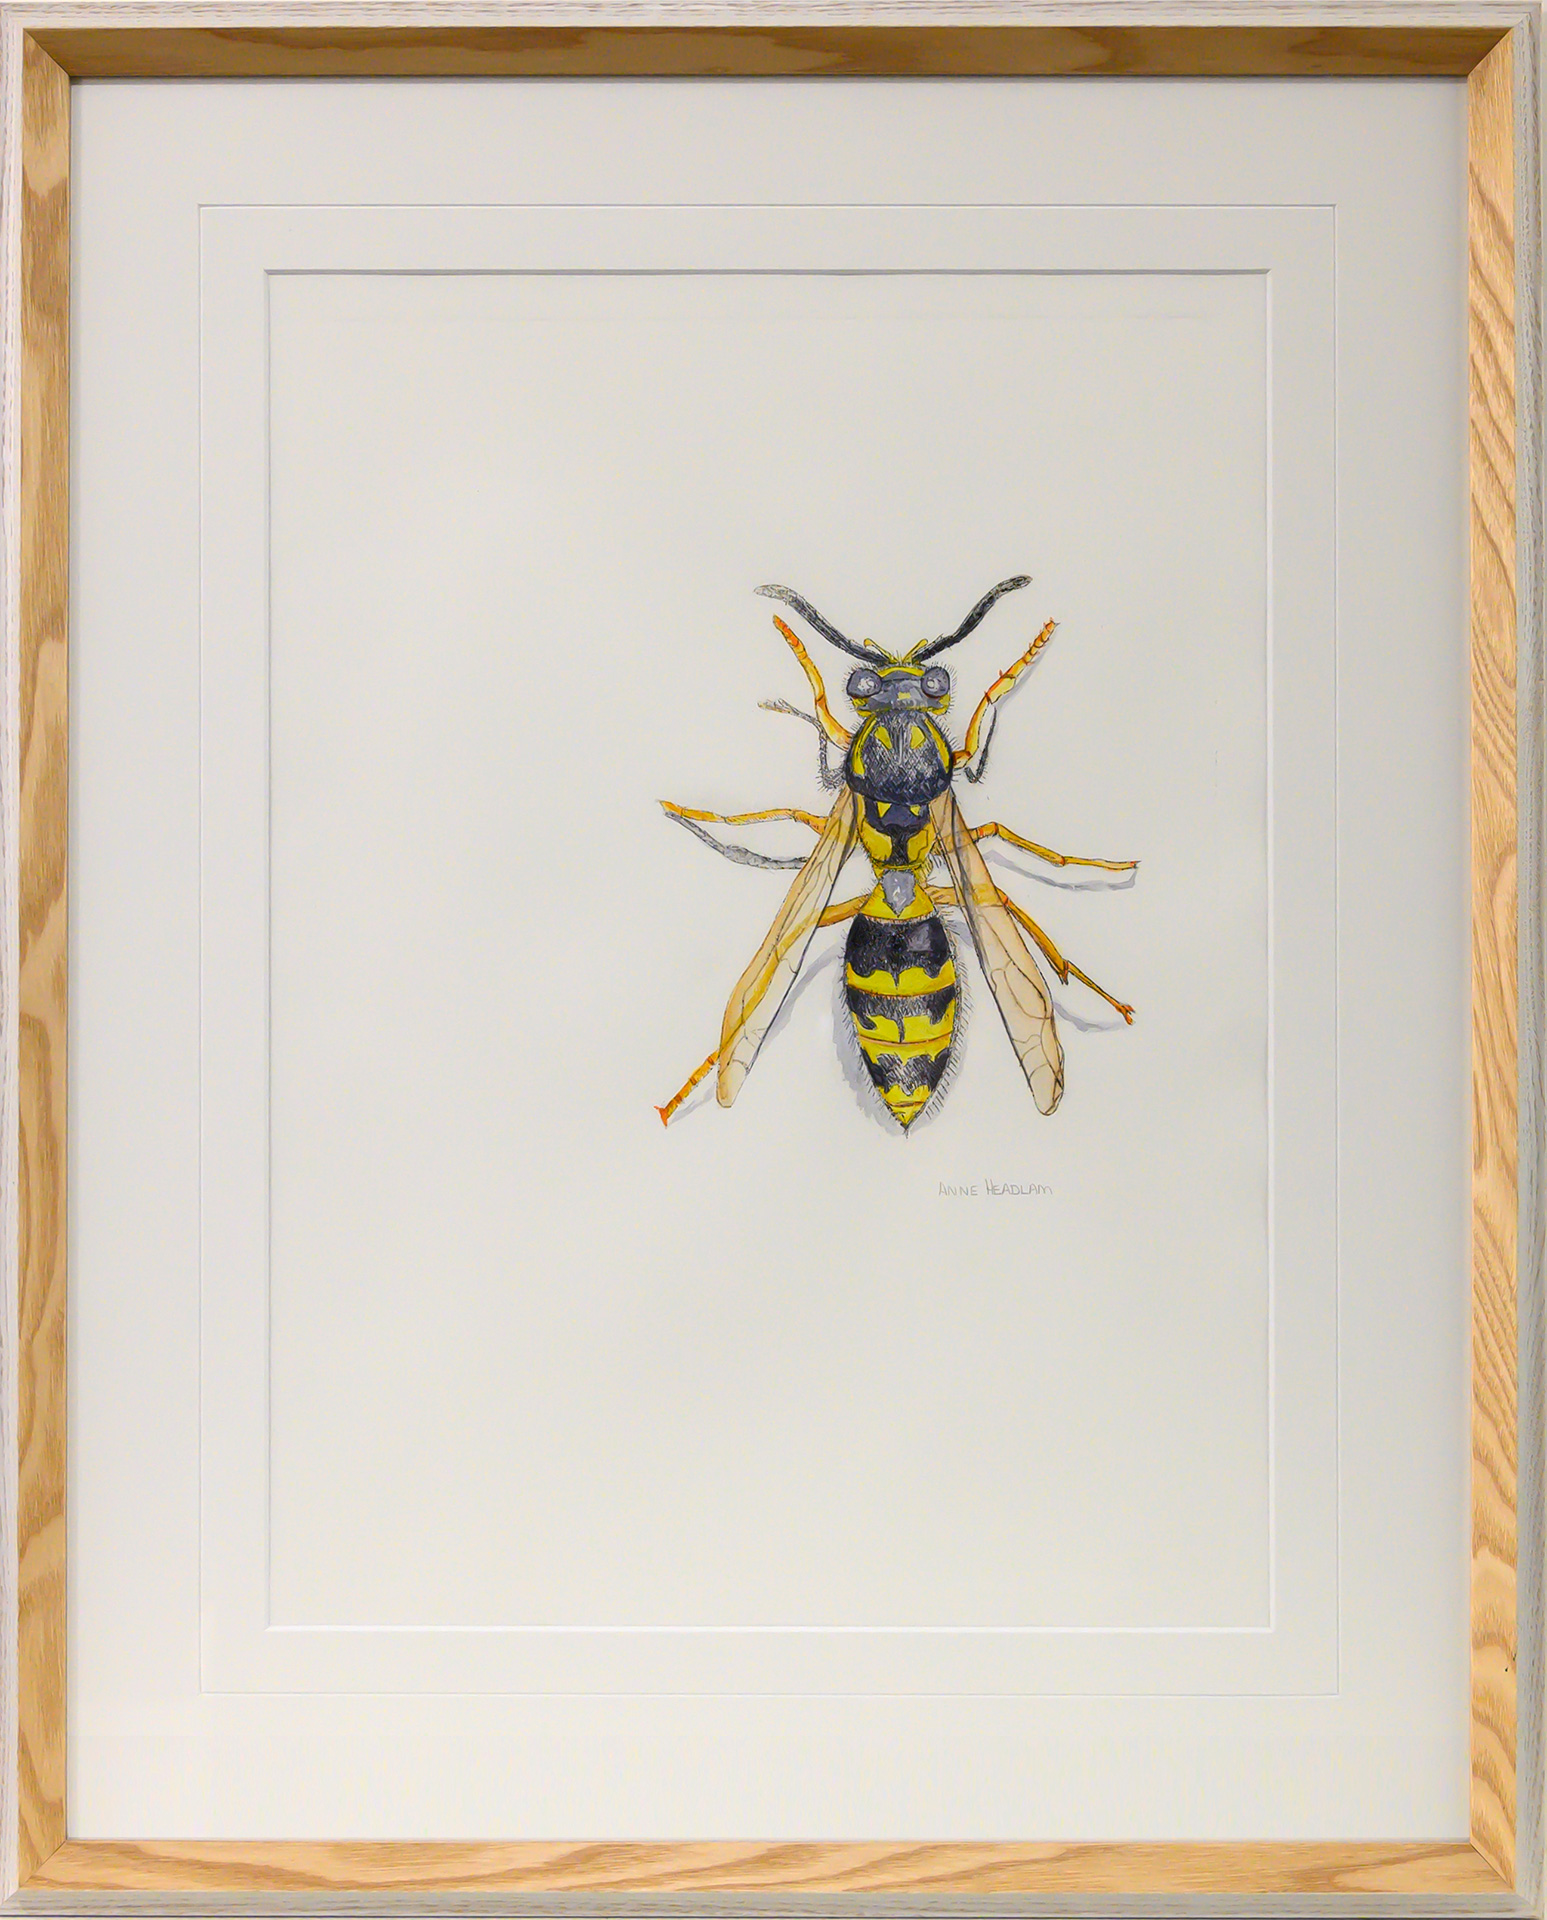 Framed artwork of a yellow and black European wasp by Anne Headlam